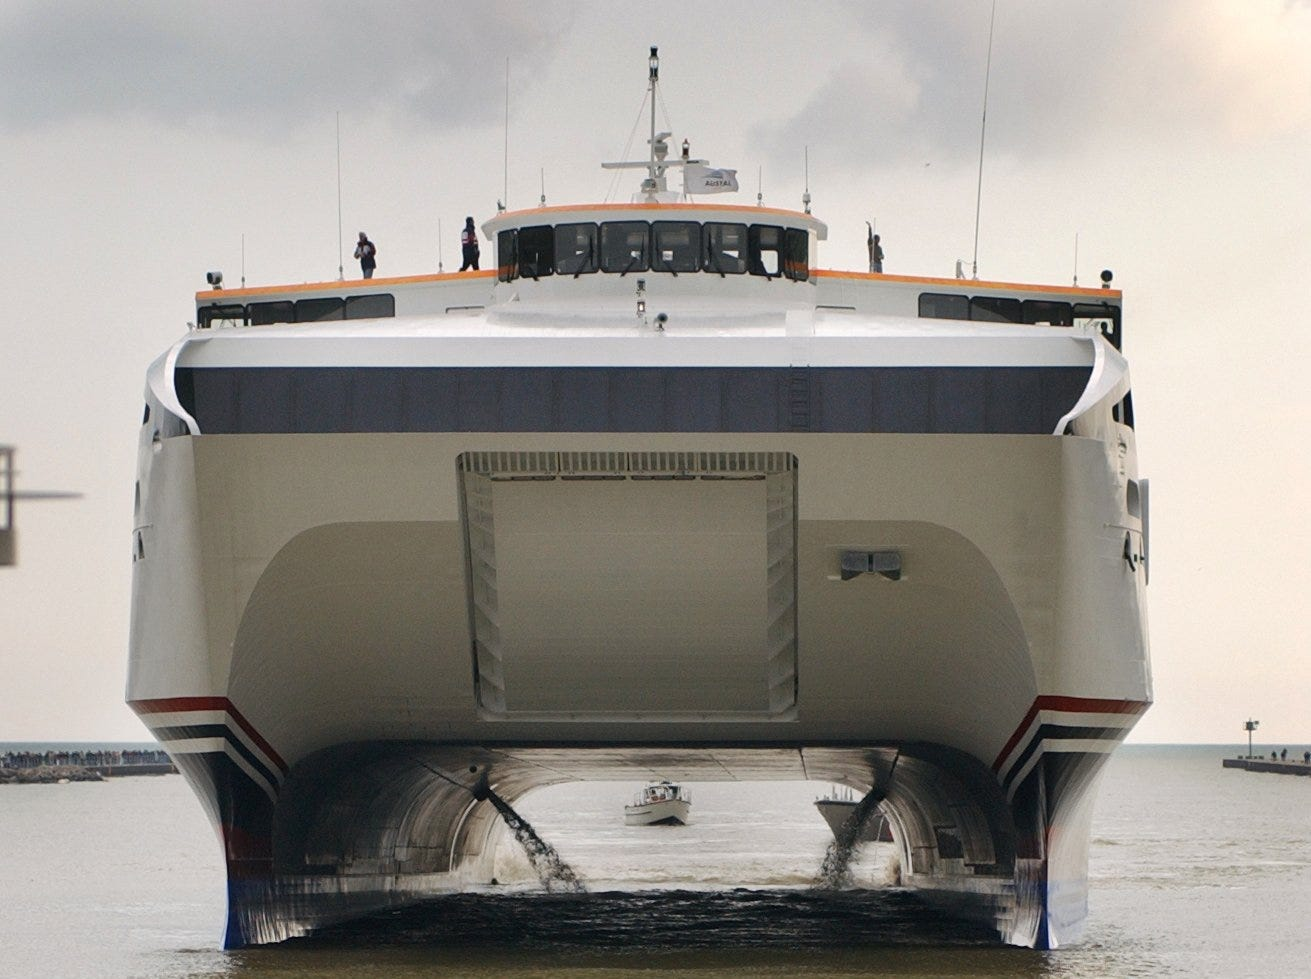 The full Monty: A timeline of our fast ferry's checkered past